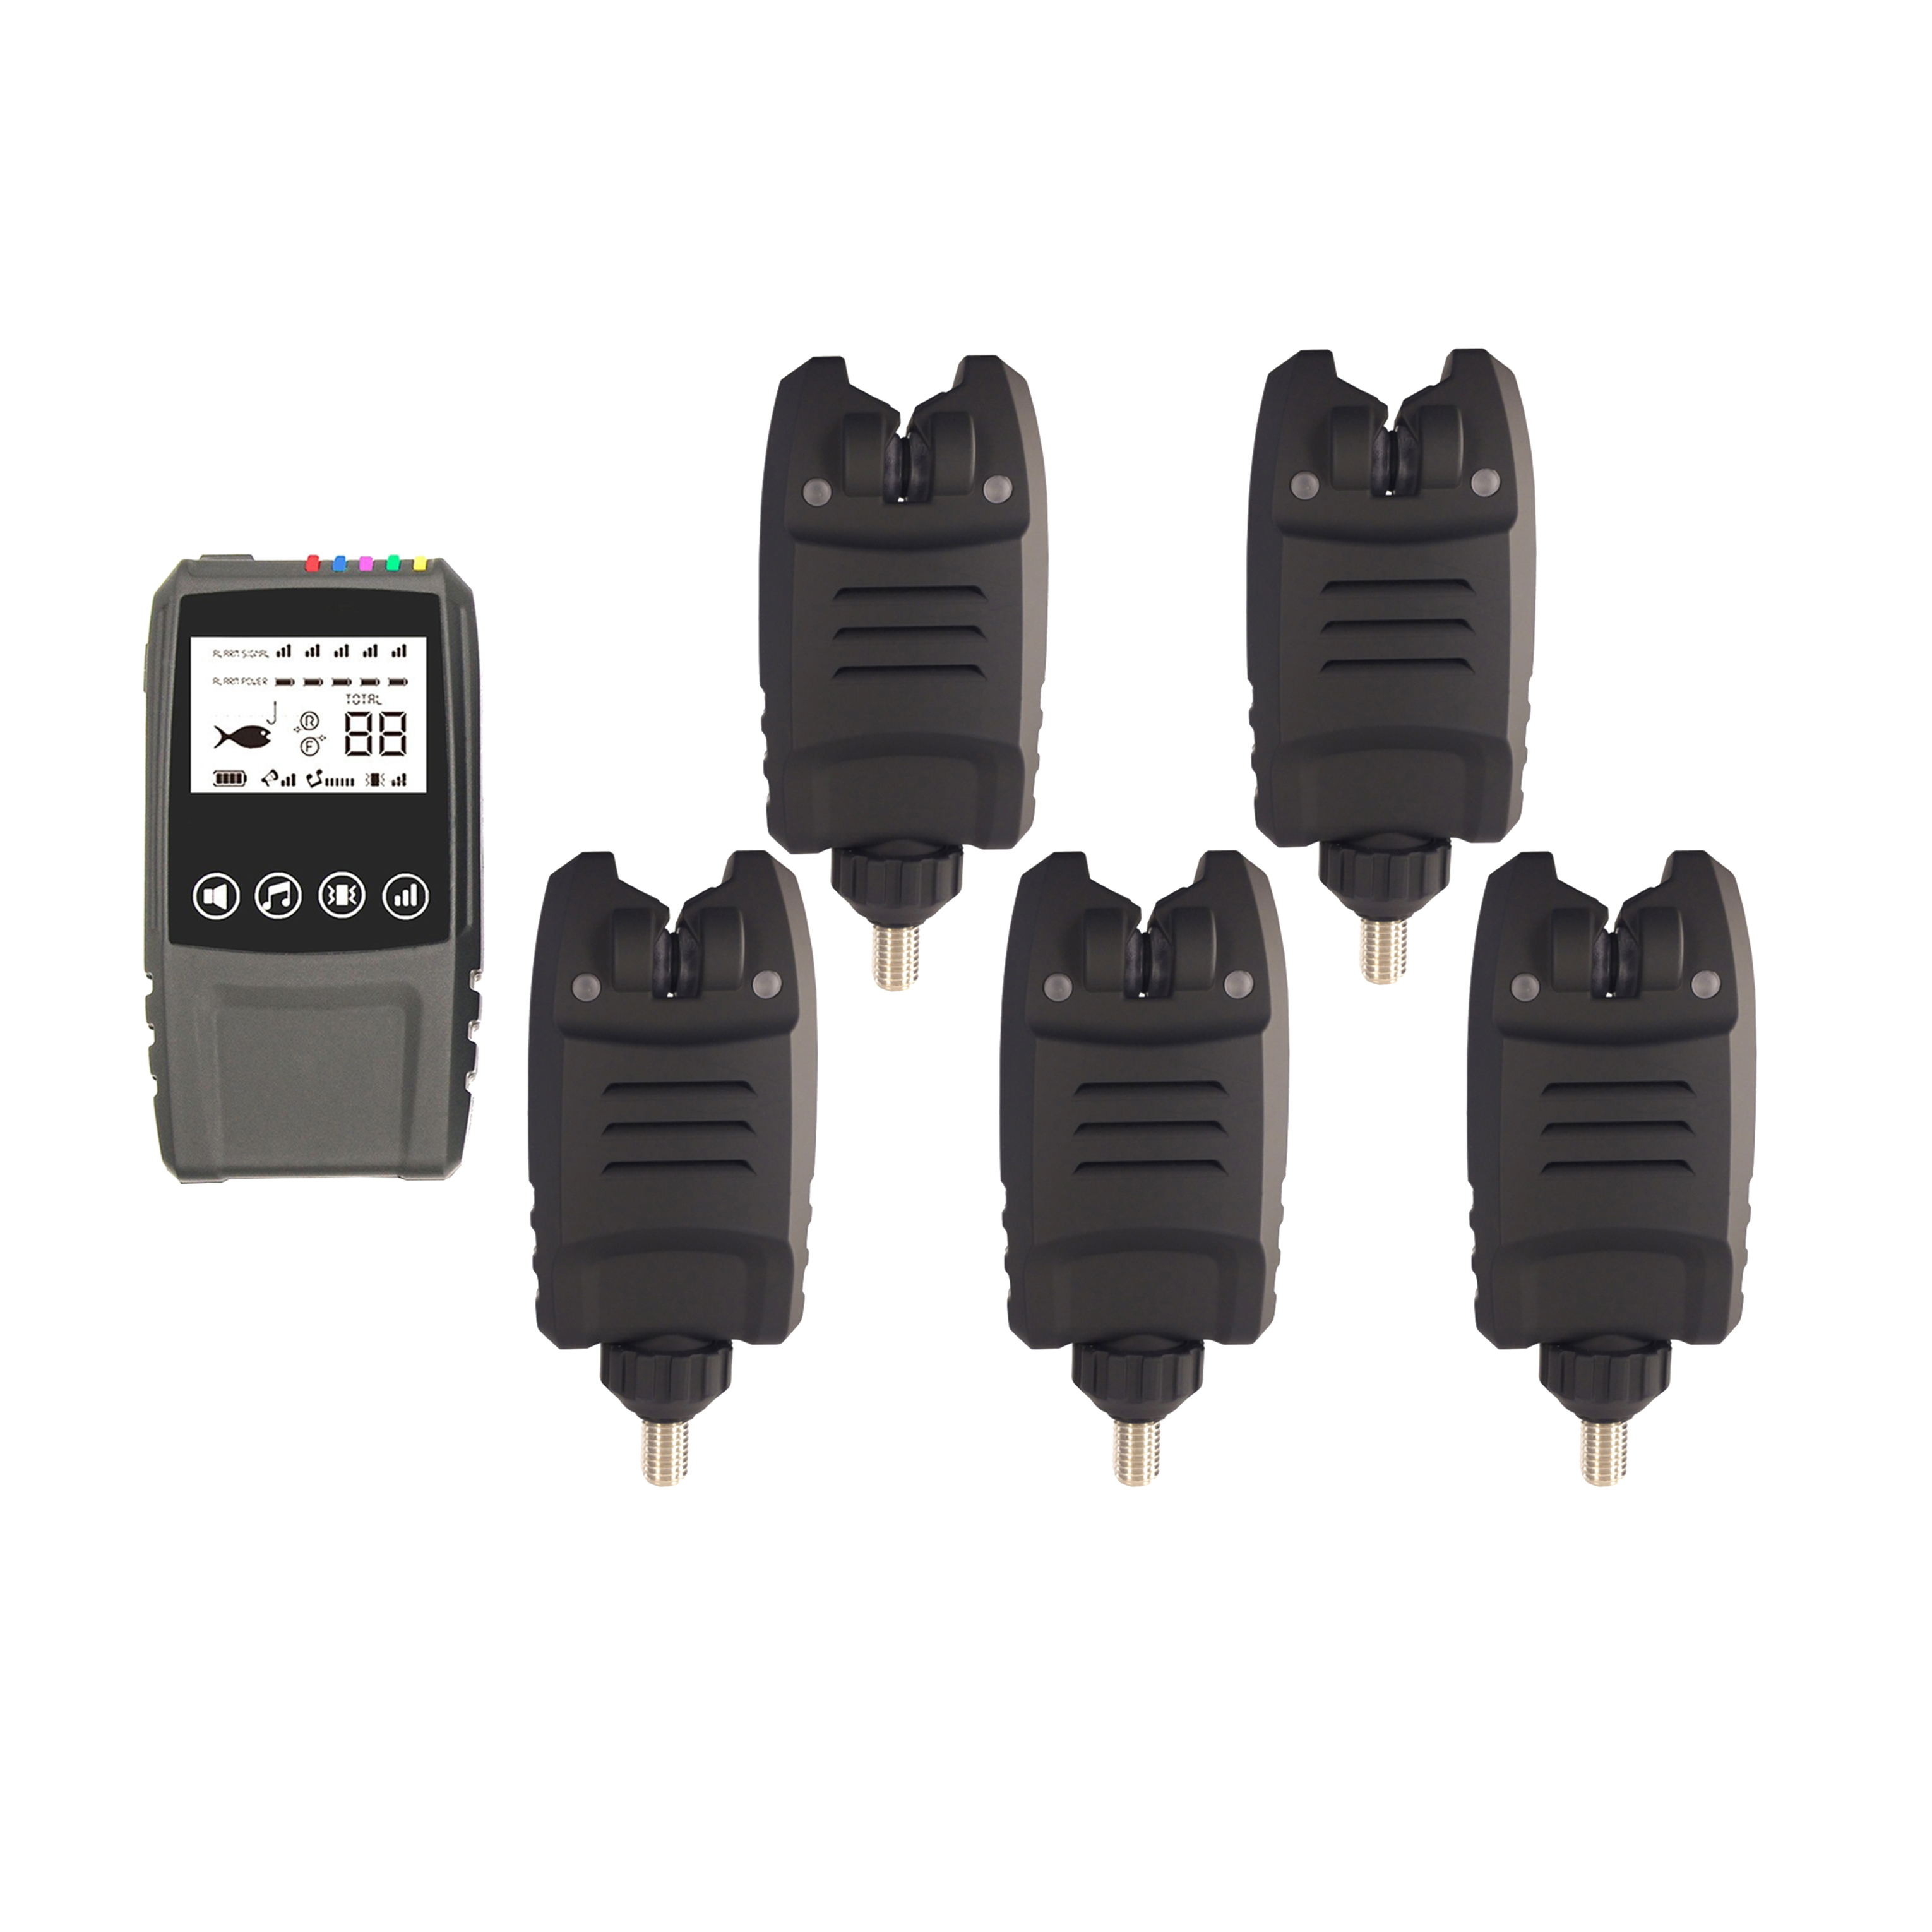 NDT Carp Fishing Wireless Digital Waterproof 2/3/4/5 Pcs Bite Alarm+1 Touch Shock Receiver With Display Screen In Case